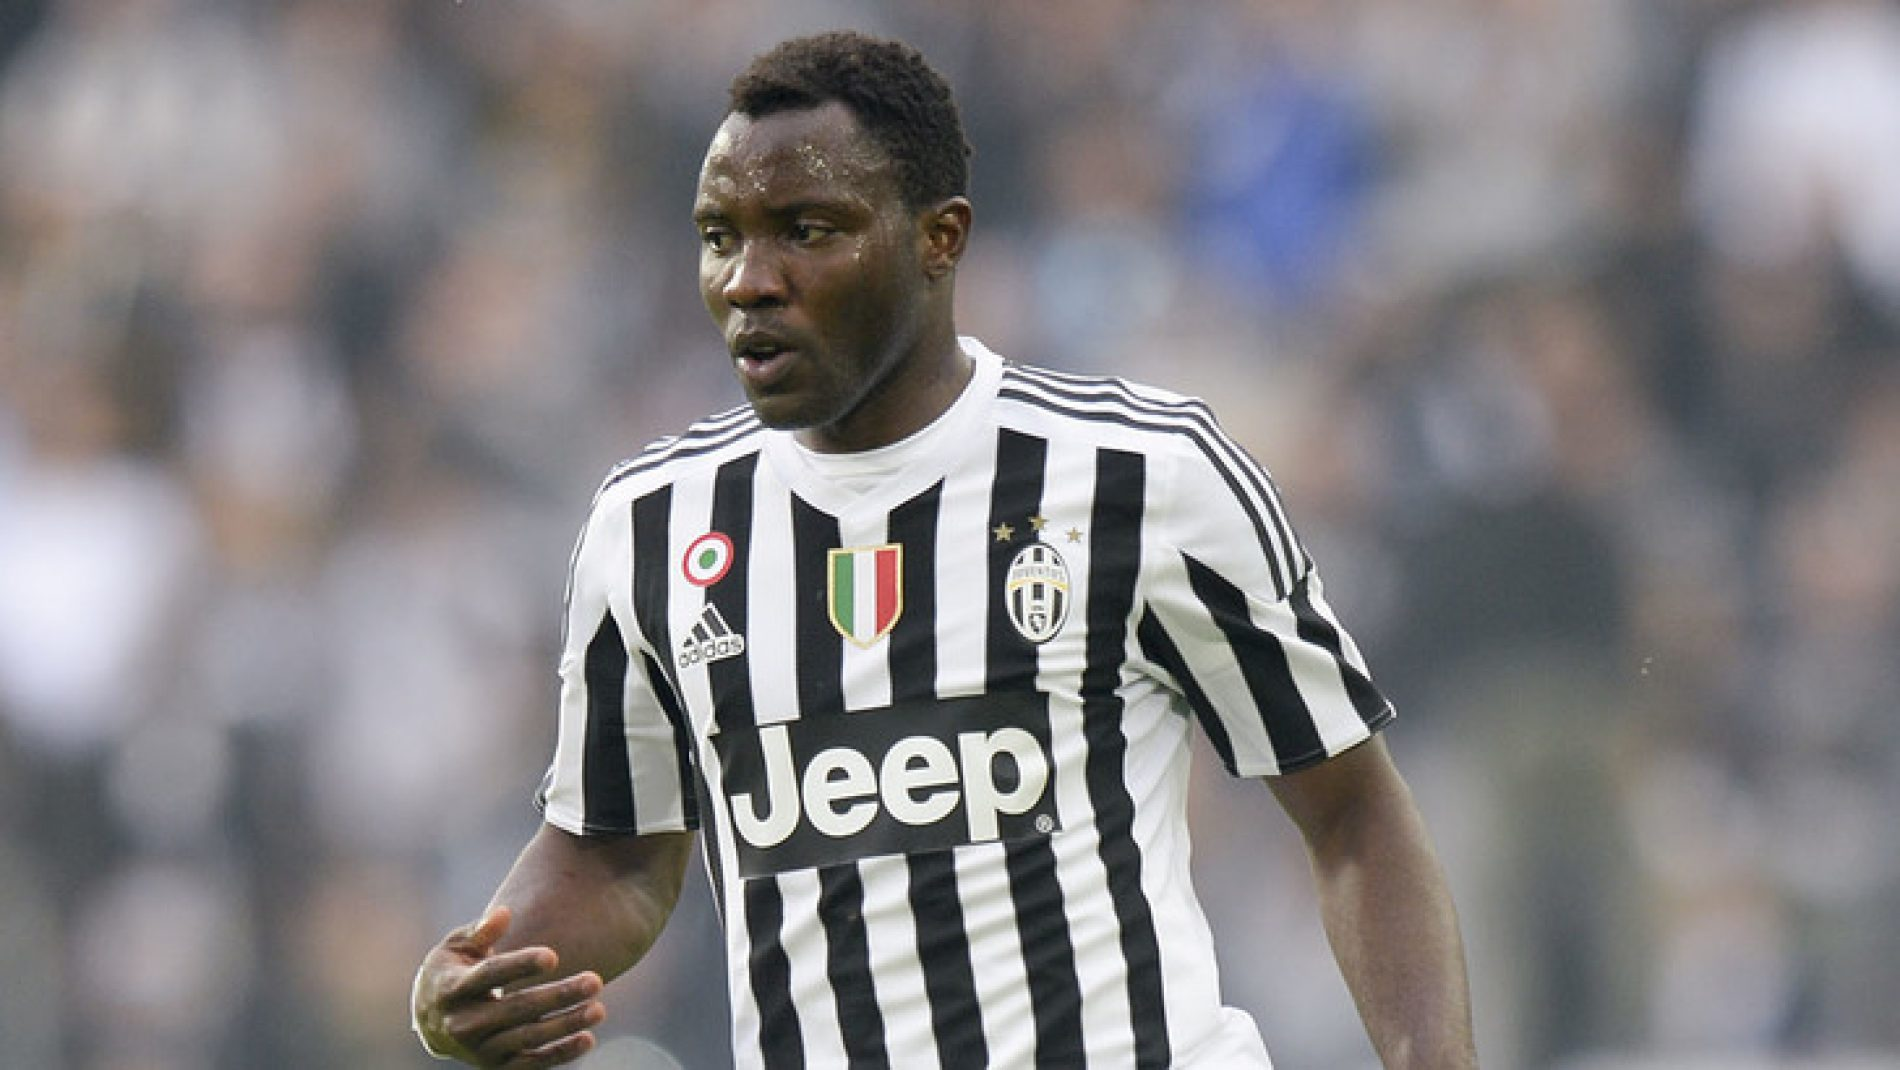 Juventus star Kwadwo Asamoah: I've regained my confidence